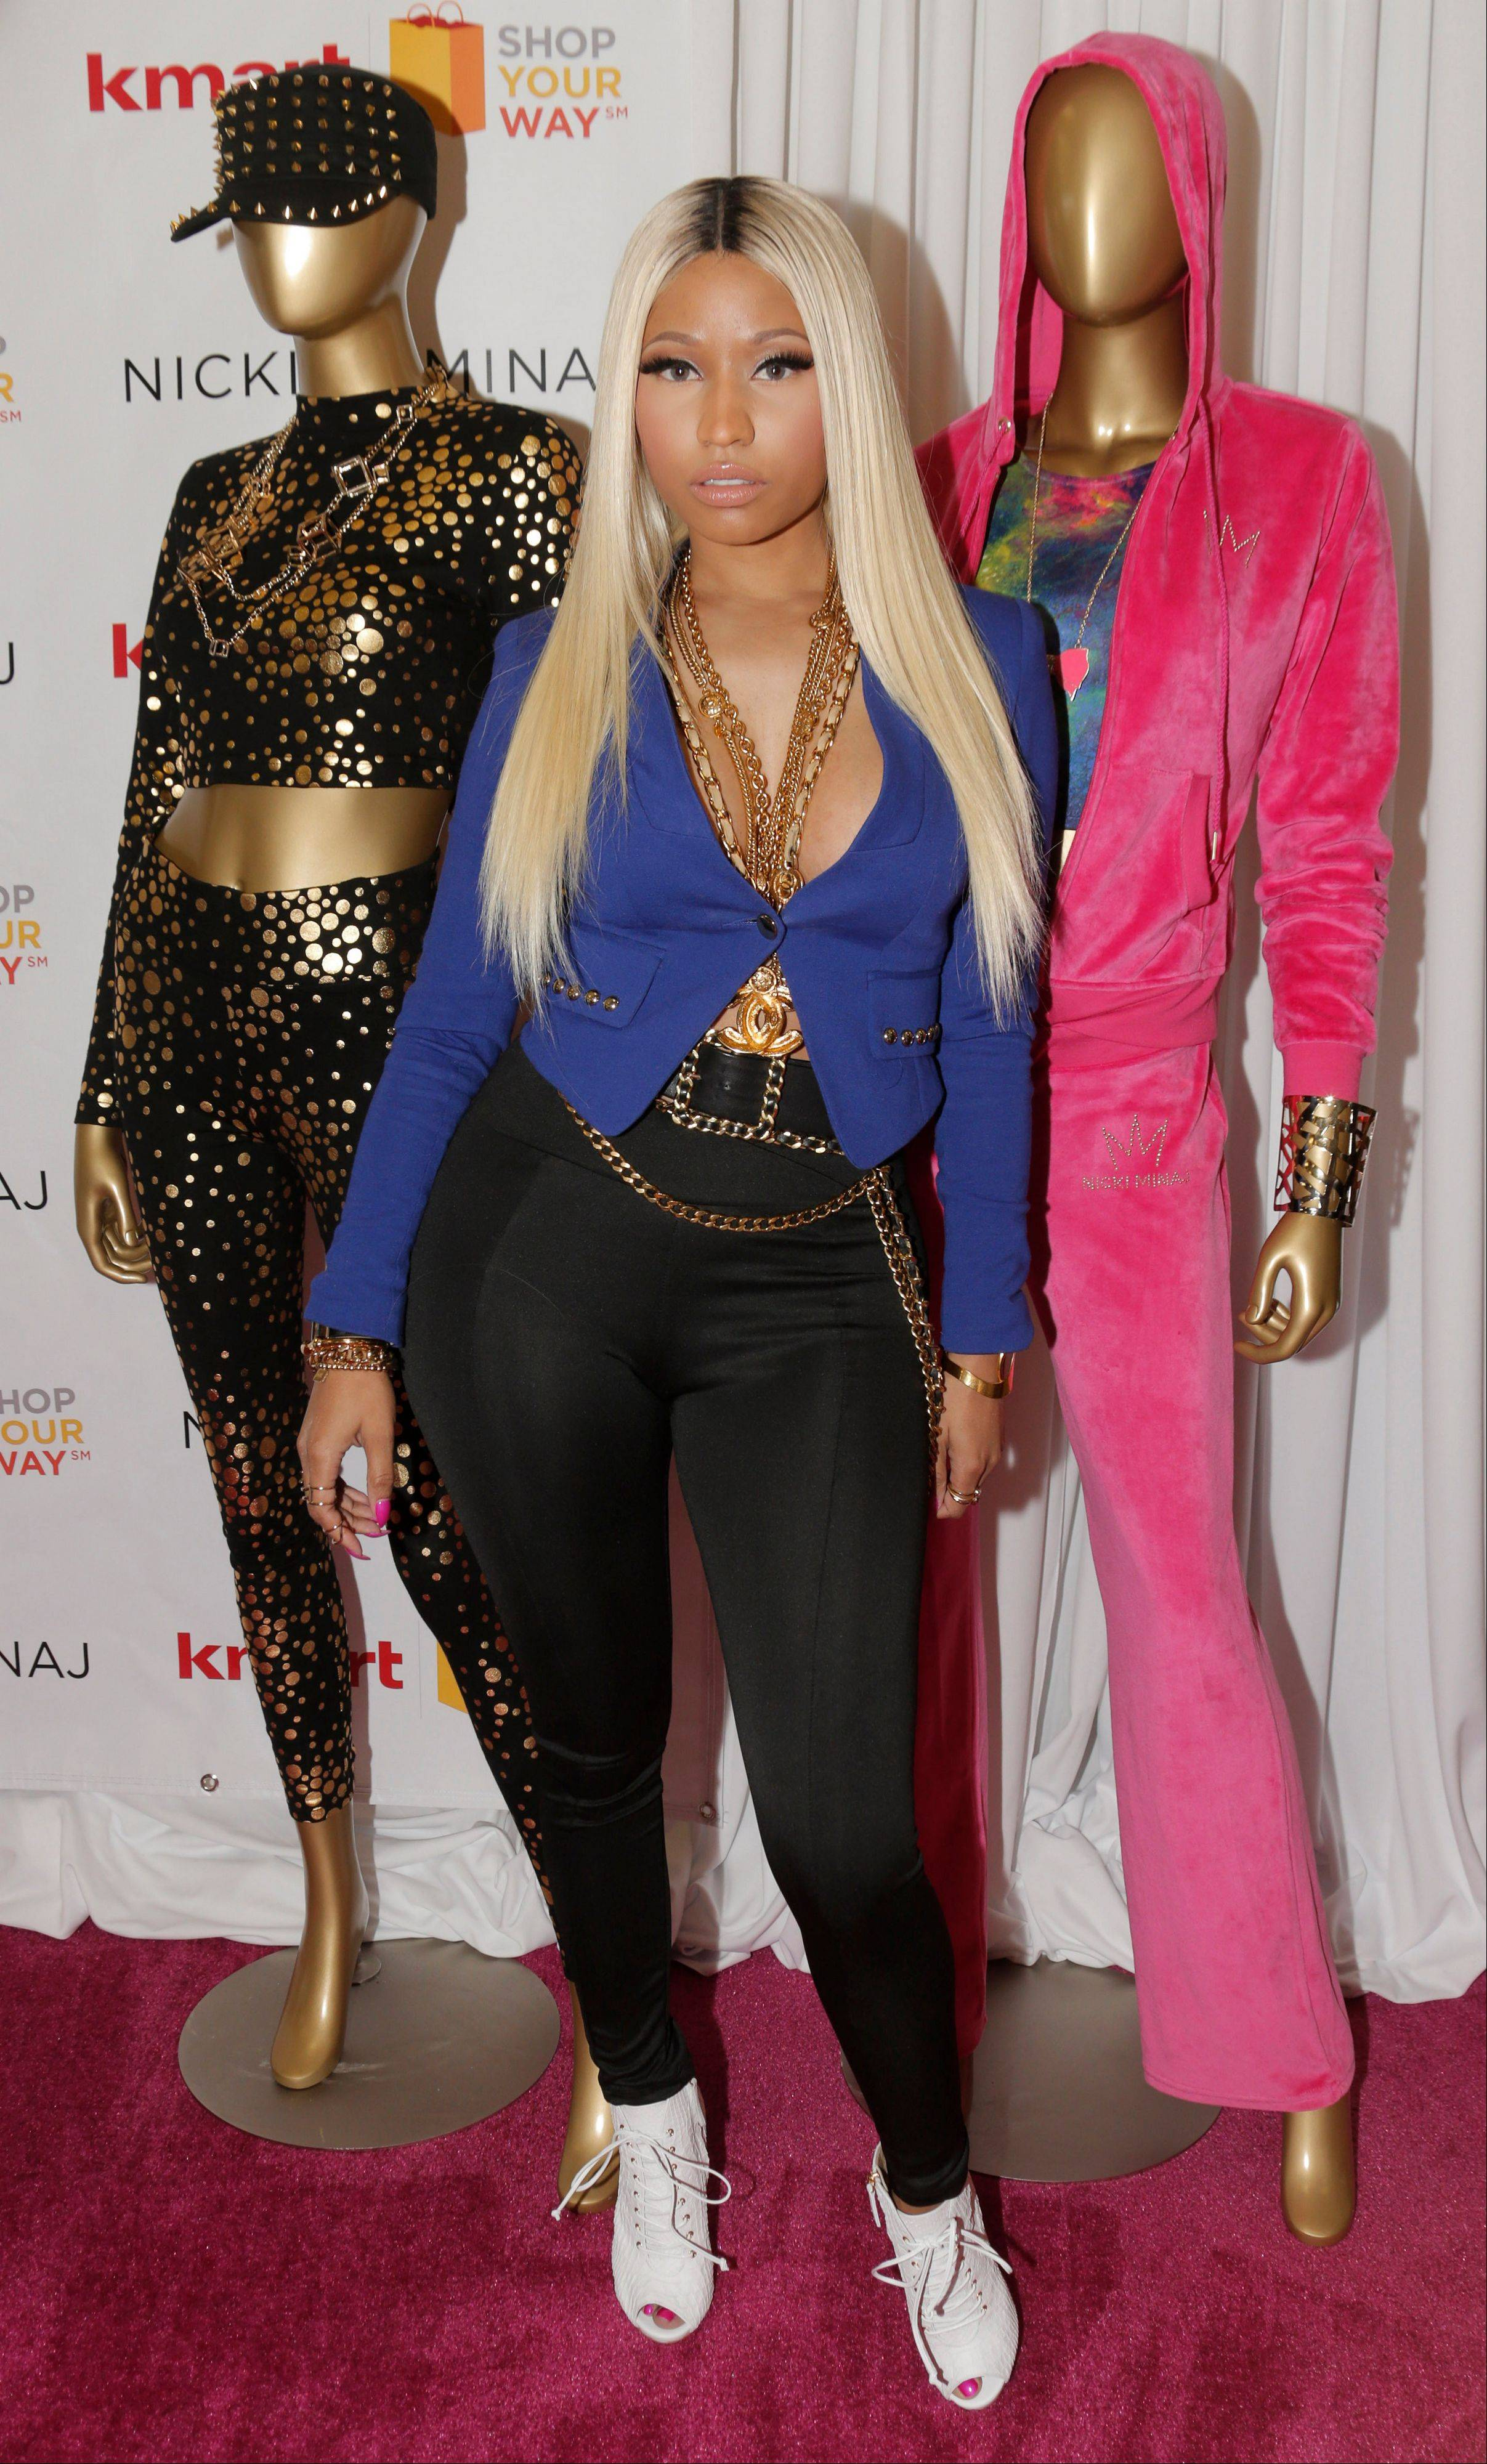 Nicki Minaj launches her fashion line at KMART on Tuesday in Los Angeles.